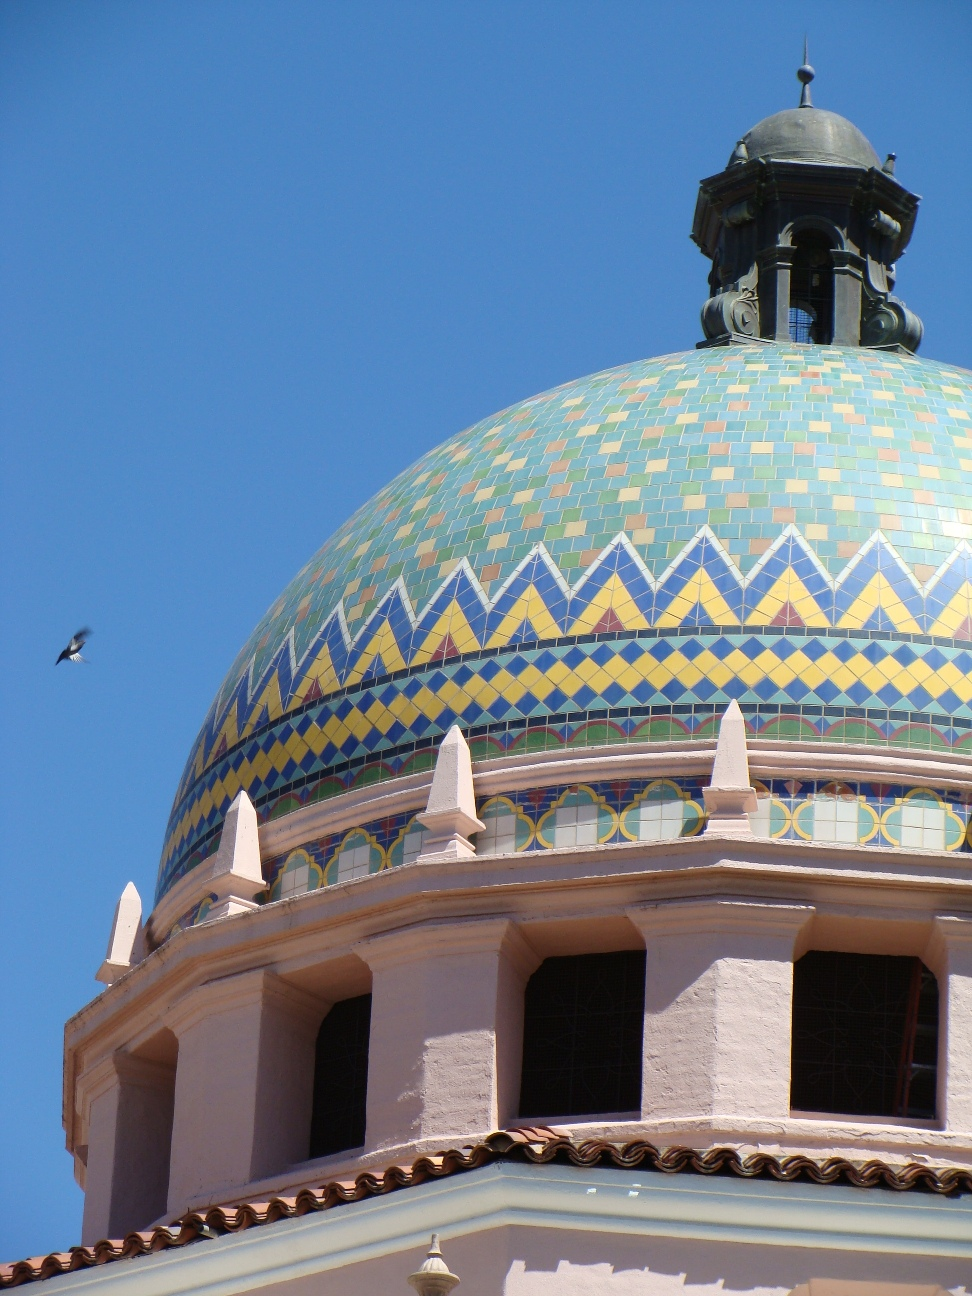 When bids came in low to build the a new courthouse in 1928, the Board of Supervisors used the extra money to order tile for the 100-foot-tall dome.